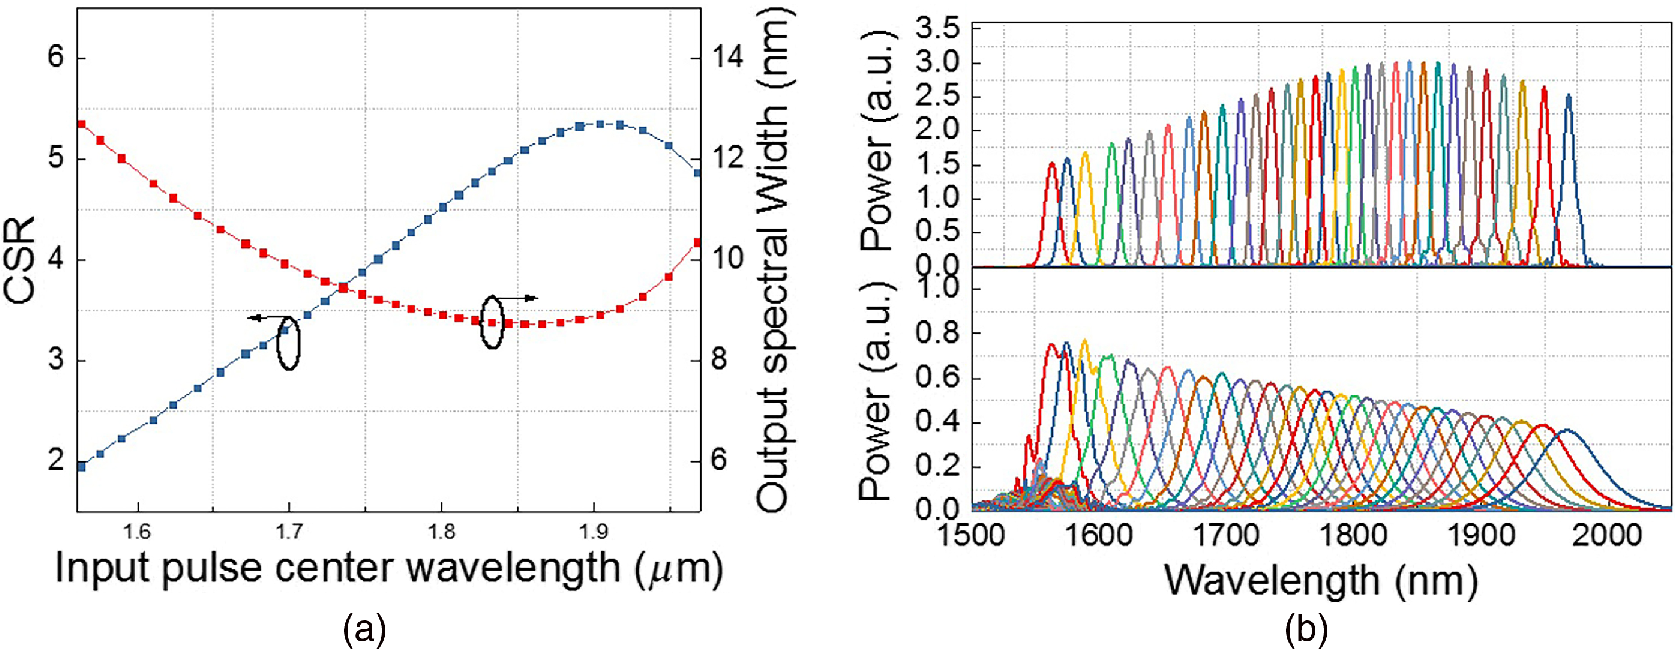 All Optical Spectral Quantization Scheme Based On Cascaded Comparator Provides Adjustable Hysteresis Window Power Content From Width As A Function Of The Center Wavelength Input Pulse And B Comparison Spectra Both Output Cssw2 Cssw 2 Cssw1 1